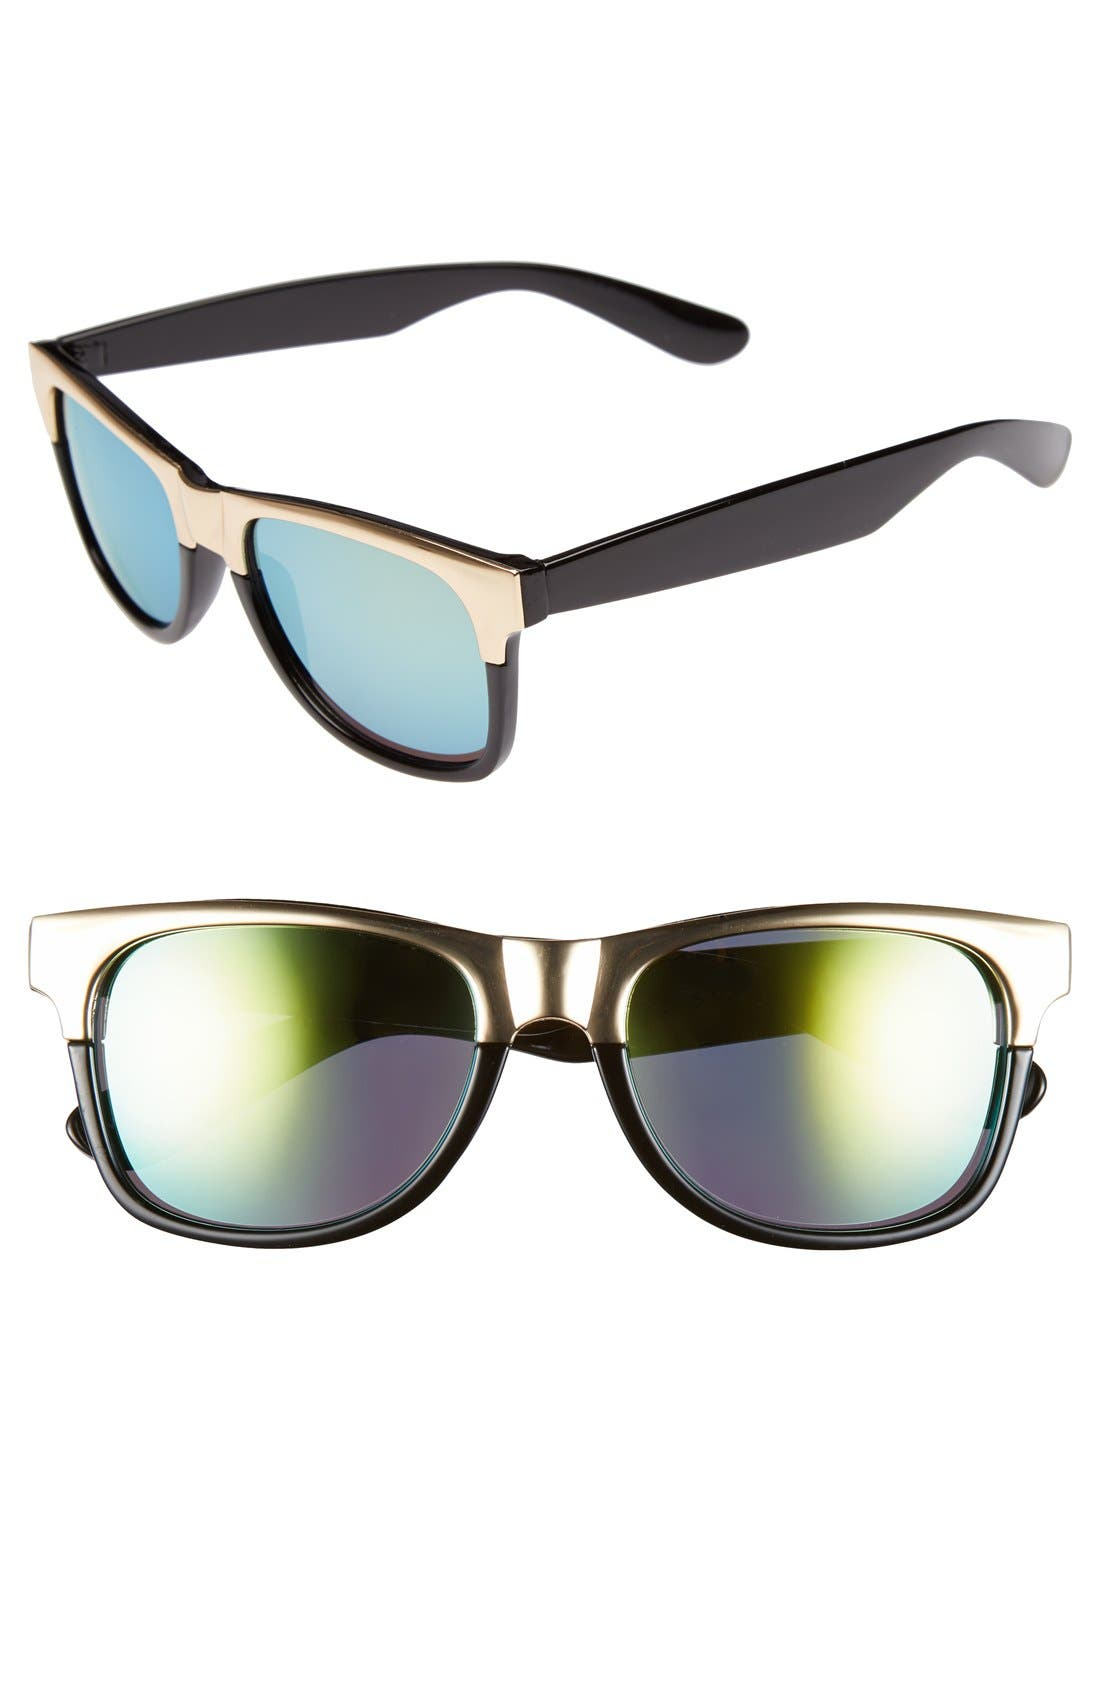 Alternate Image 1 Selected - FE NY 54mm Metallic Browline Sunglasses